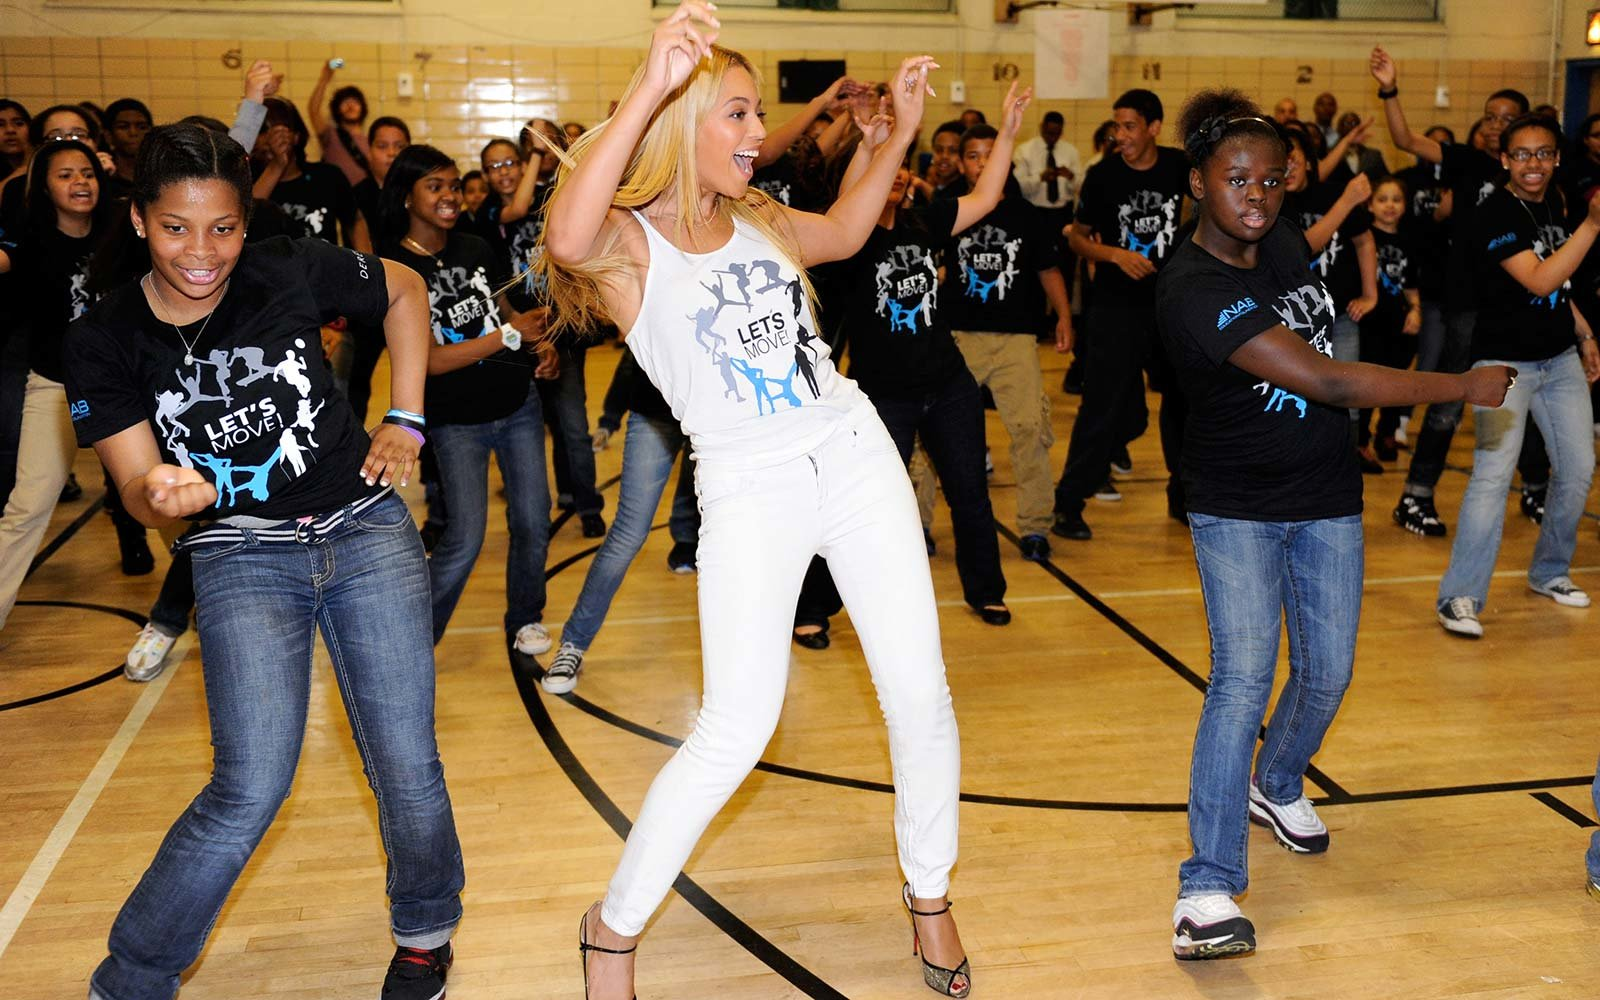 Beyonce surprises students at PS/MS 161 in Harlem as part of First Lady Michelle Obama's  Let's Move  initiative to fight childhood obesity. The students were dancing to  Move Your Body,